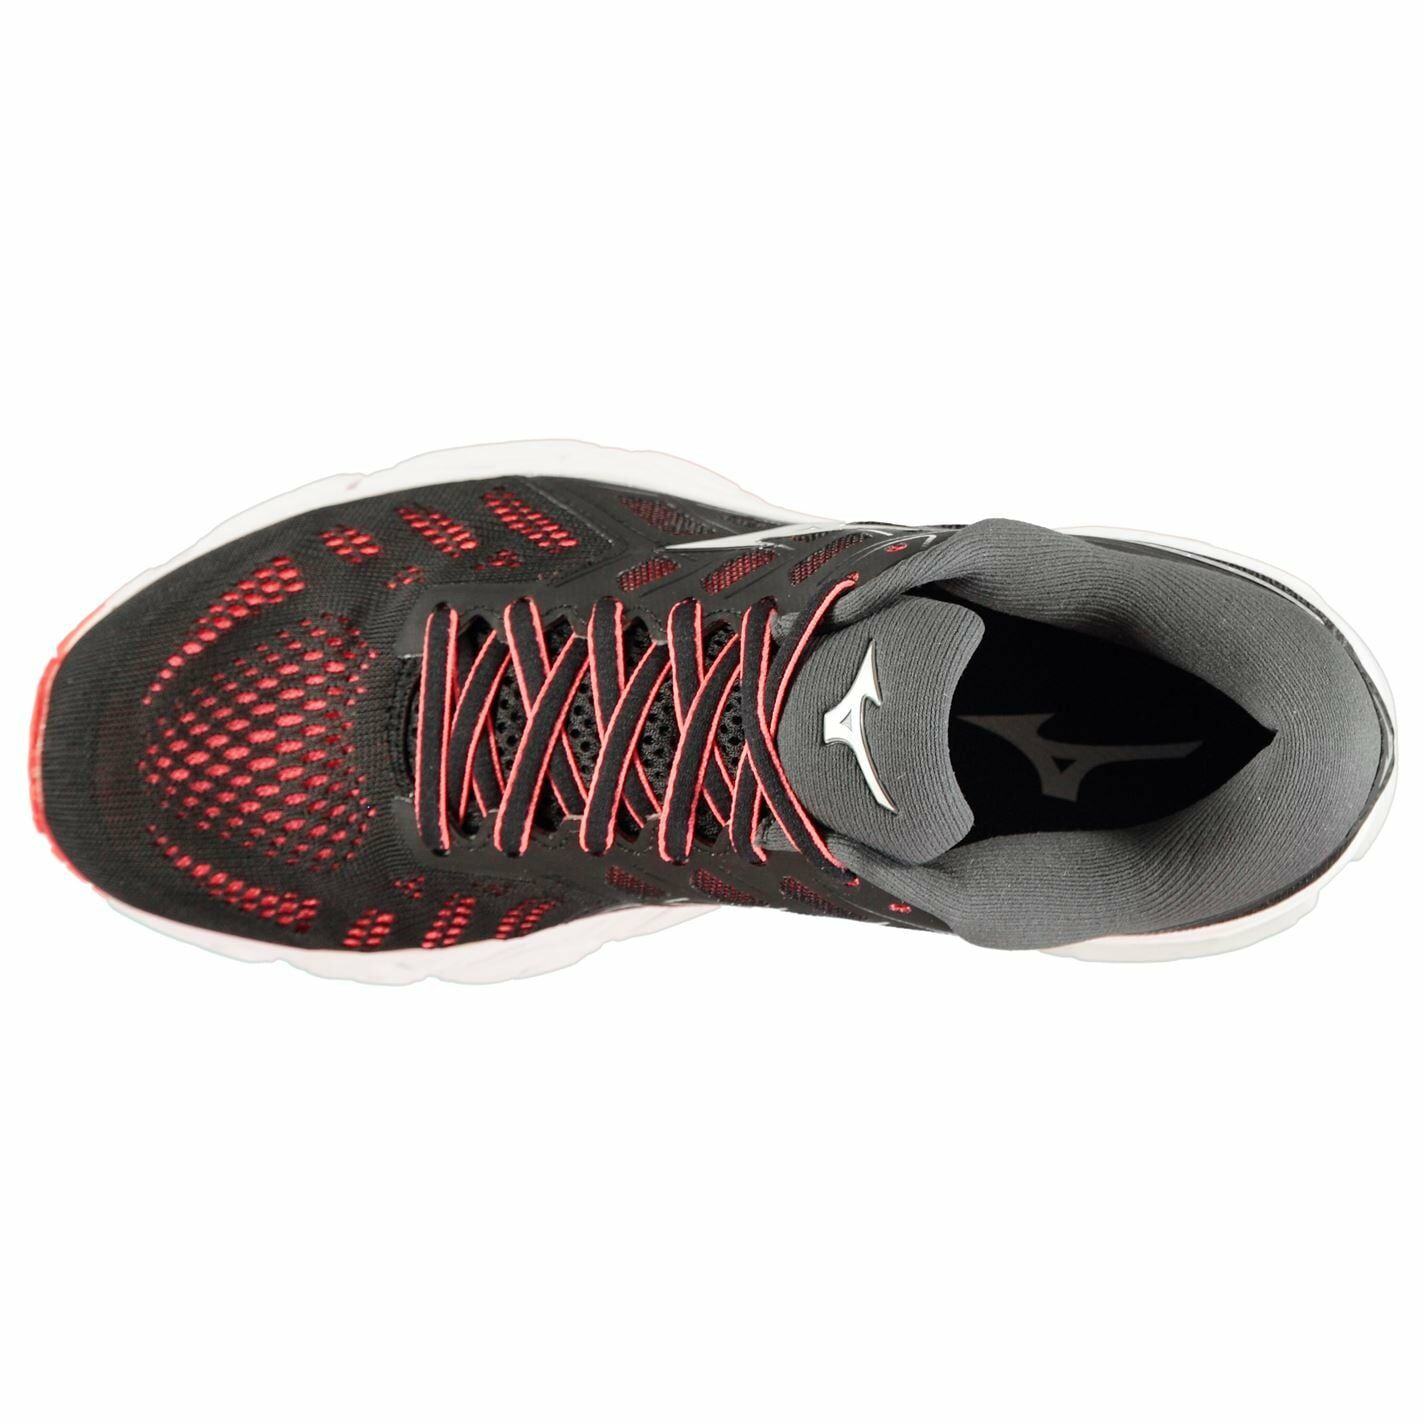 aae49d226ee Mizuno Wave Ultima 11 Ladies Running Shoes. Рейтинг: - 17%. Thumbnail 1  Thumbnail 1 Thumbnail 1